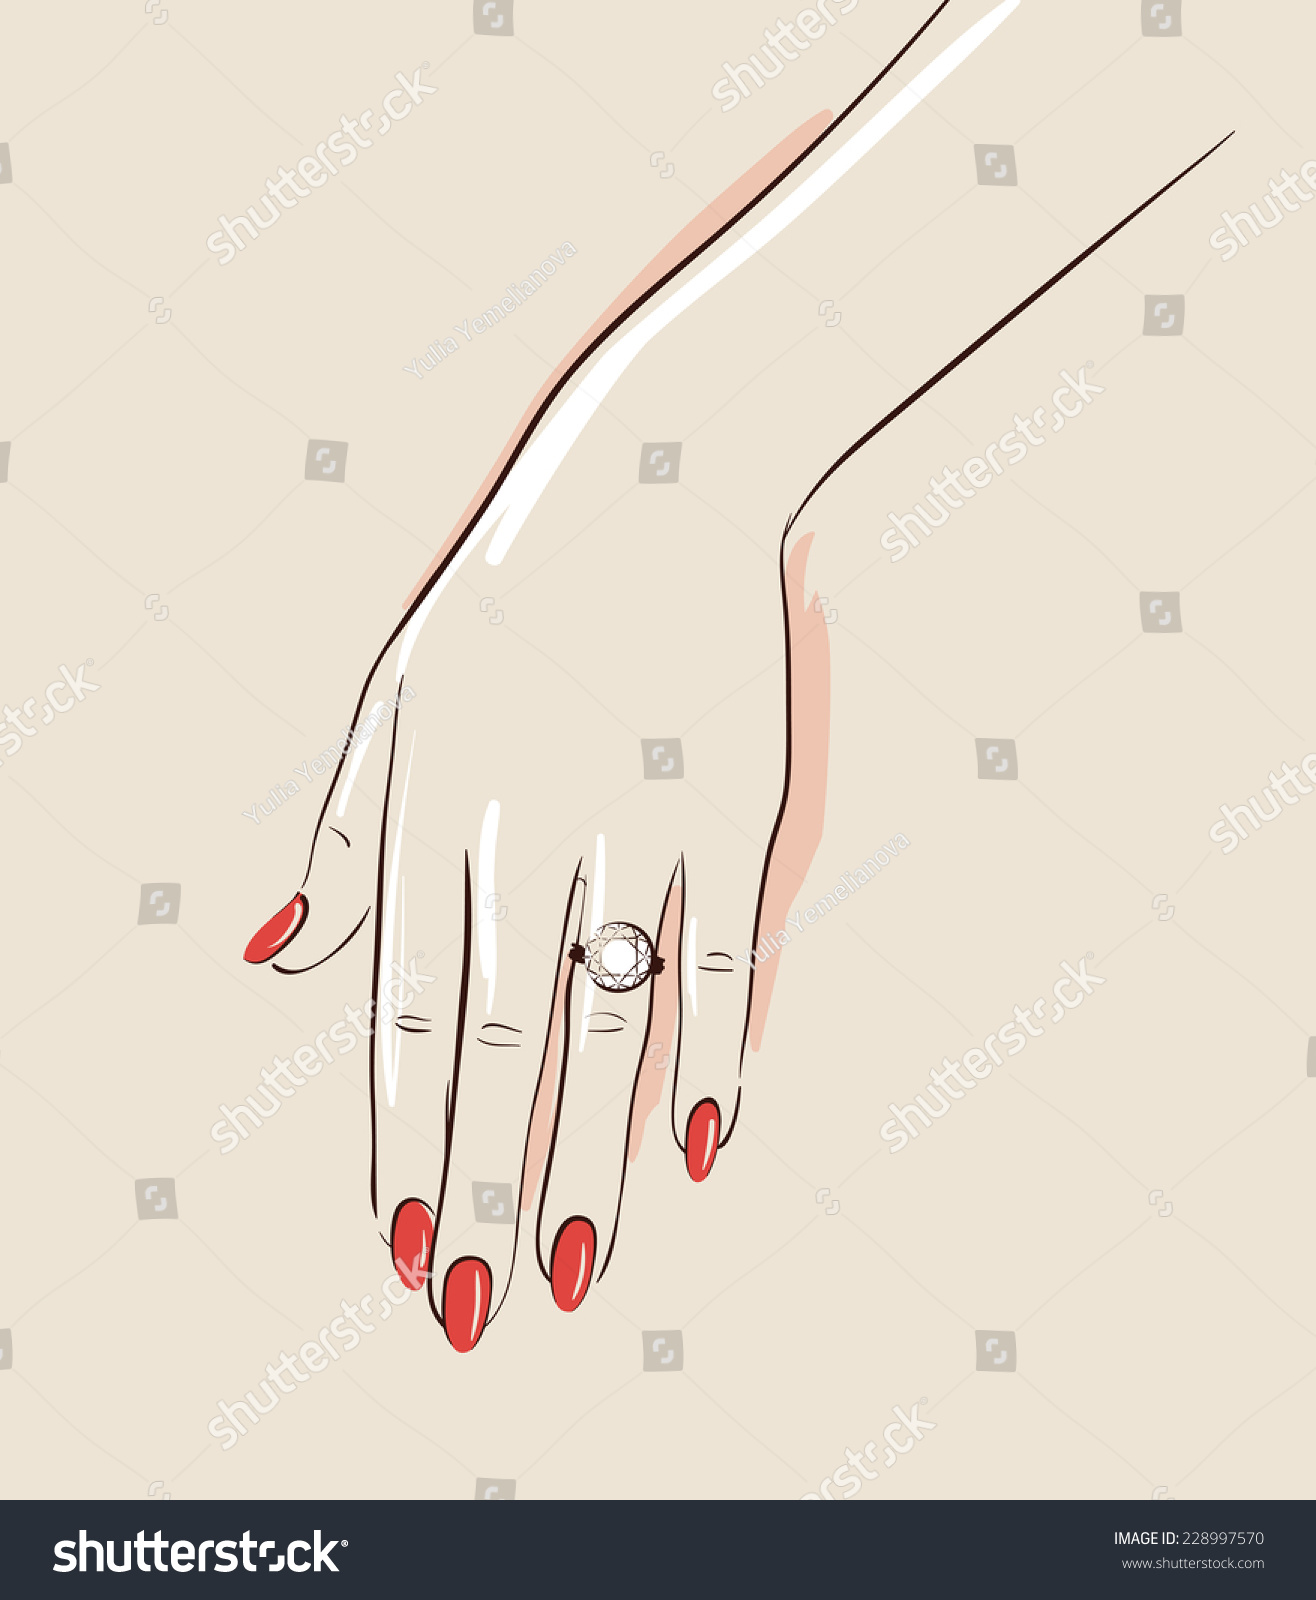 wedding ring drawing. woman hand wearing a wedding ring drawing. illustration eps 10 drawing